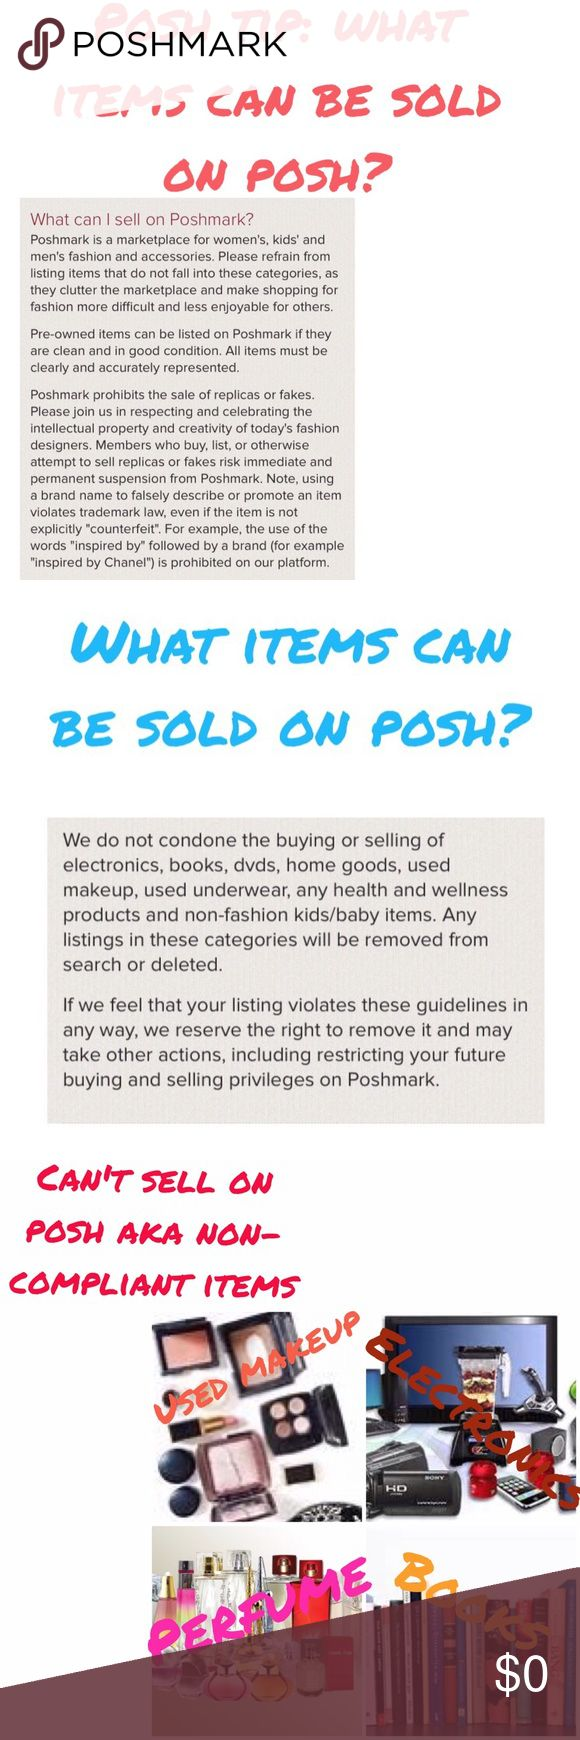 Host picks will be chosen from compliant closets I am looking for host picks for my upcoming simply chic party on 4/15/17.....I will be only picking from posh compliant closets...what can be sold on posh (compliant items) vs. what can't be sold on posh (non-compliant items) can be seen in this listing and are screenshots from Posh FAQs.  Selling non compliant means you can't be a suggested User, can't host posh parties or get host picks from the host of those parties, risk deletion of the…